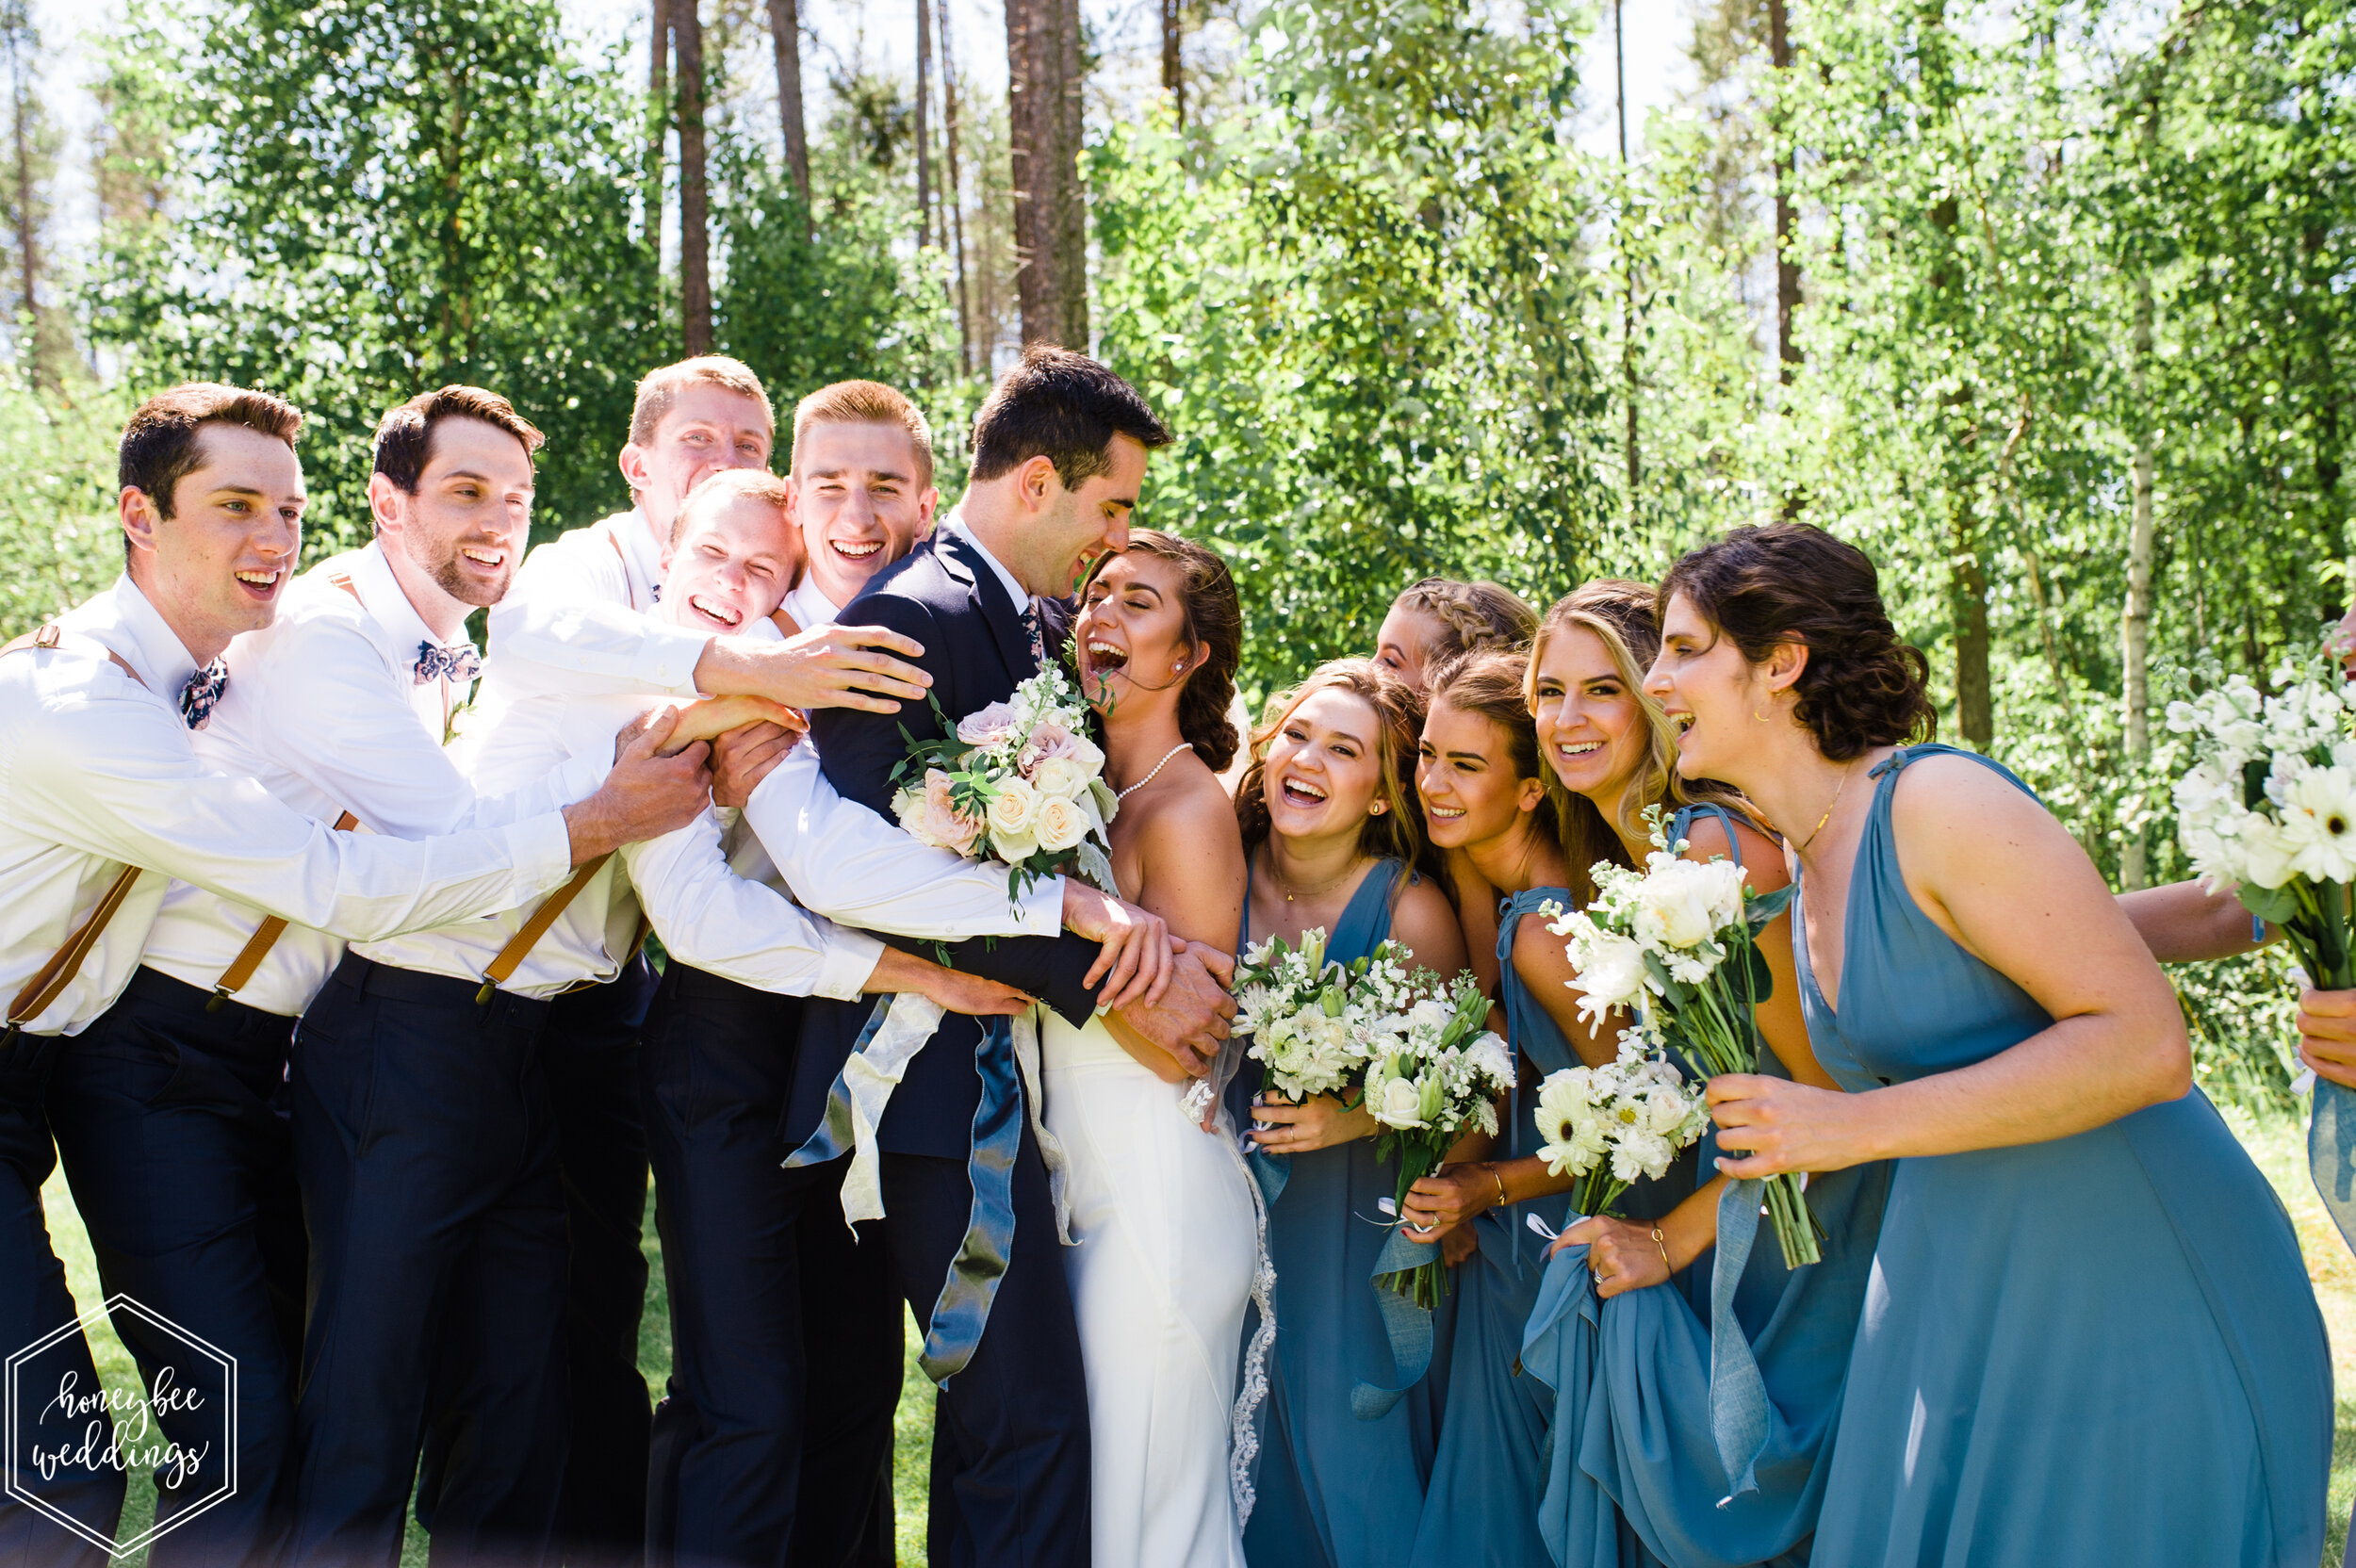 049Glacier National Park Wedding_Glacier Outdoor Center_Honeybee Weddings_Anna & Seth_July 21, 2019-1986.jpg